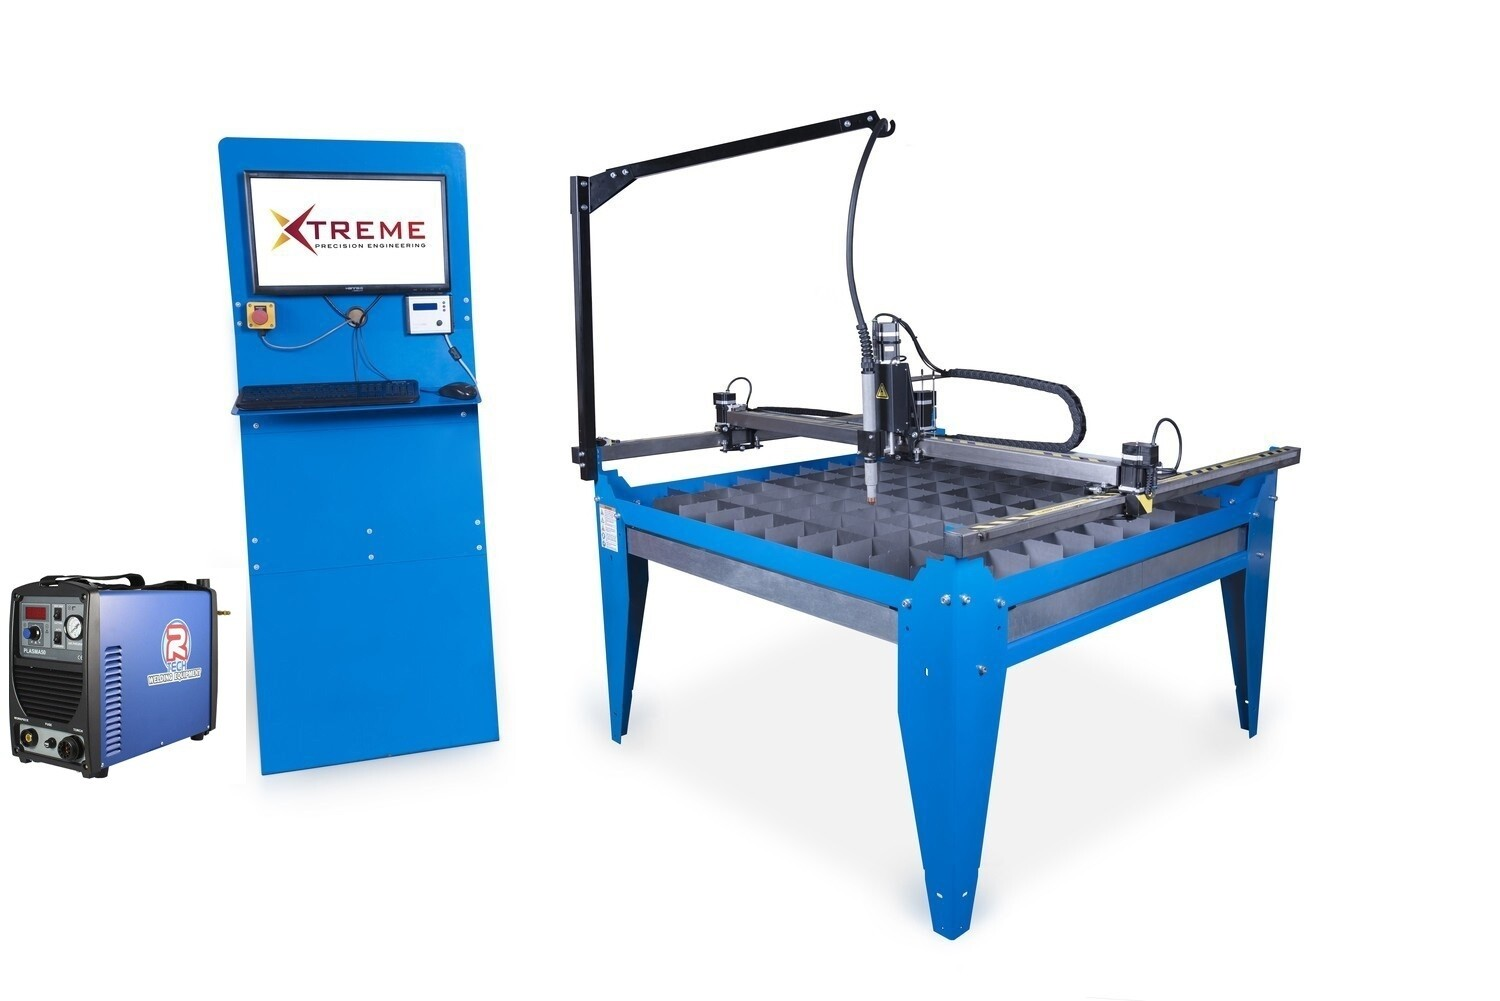 5x5 CNC Complete Plasma Cutting Table Kit & 50 Amp Cutter(240v)(Cut upto 12mm steel) Coming Soon